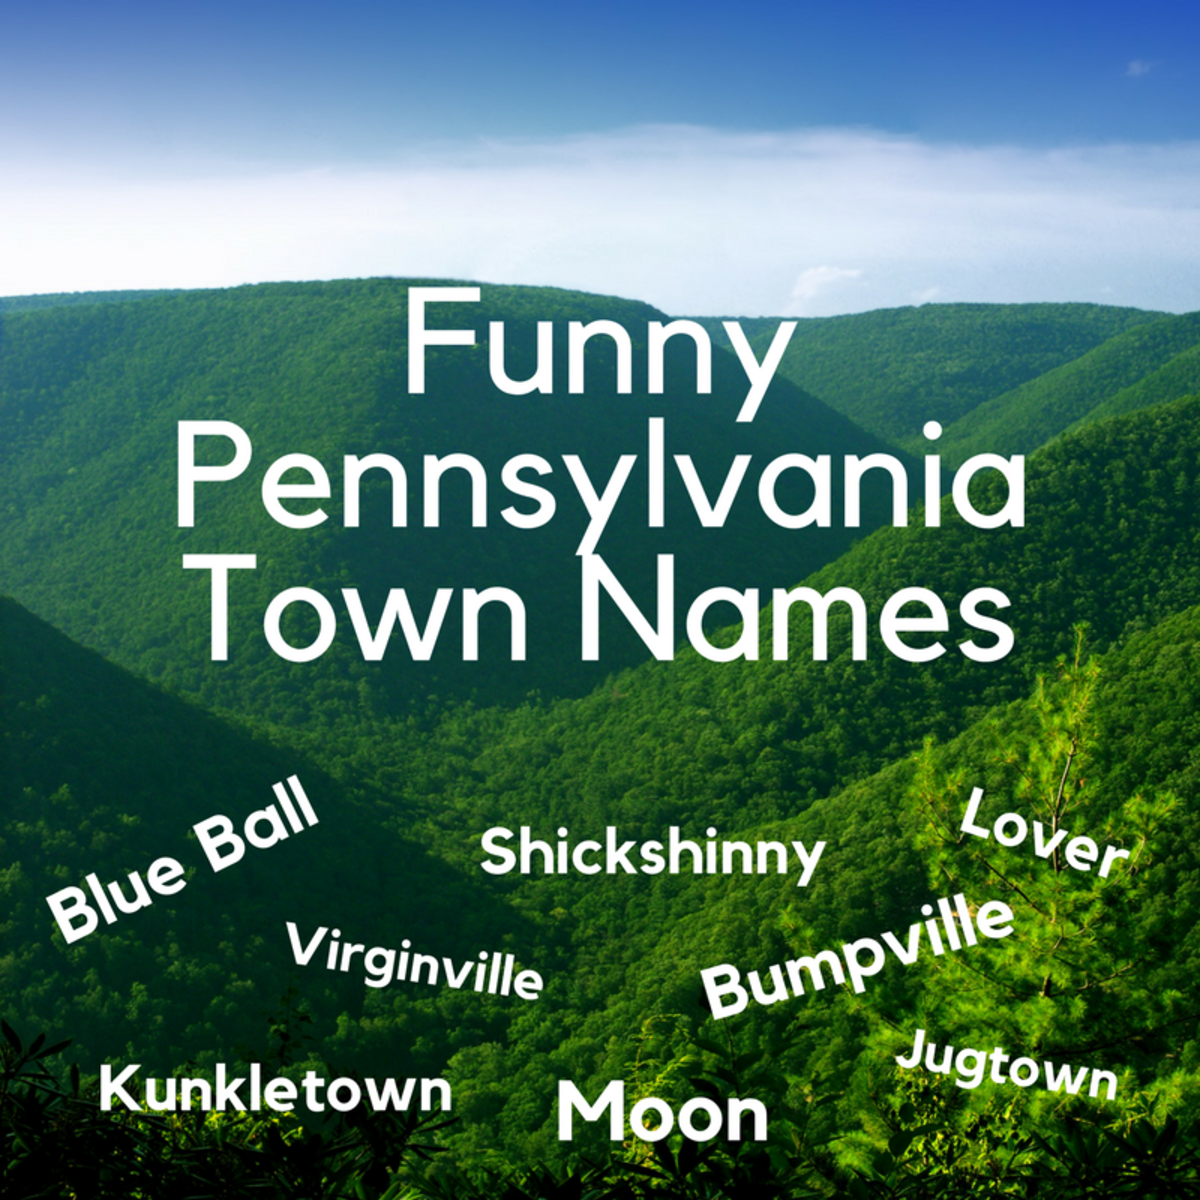 Amish Communities In Usa Map.Funny Pennsylvania Town Names Wanderwisdom